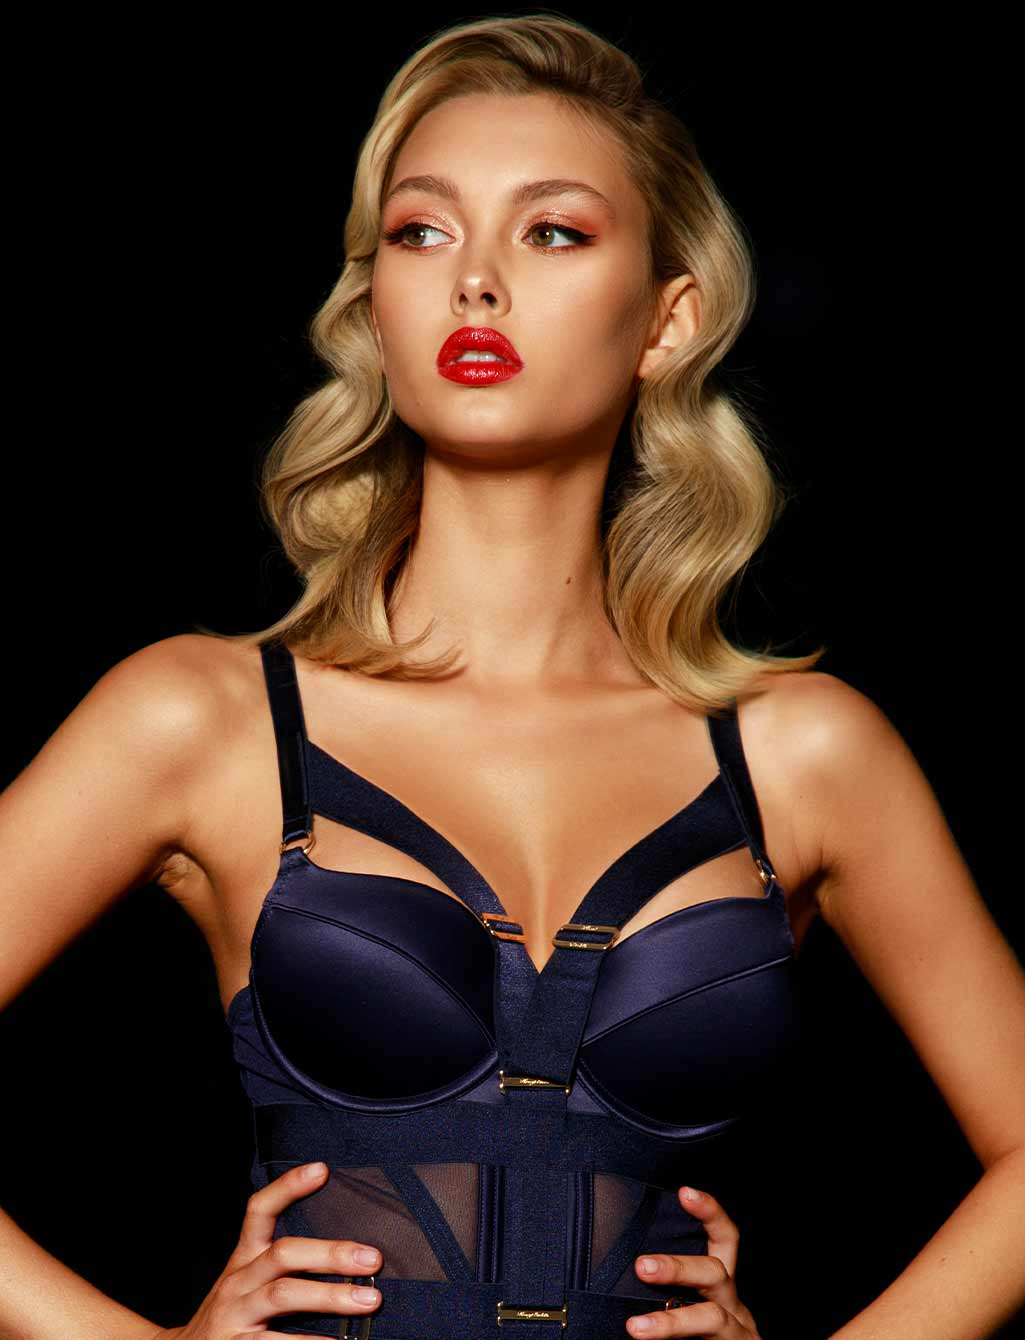 Elvis Navy Blue Bodysuit Push Up Bra